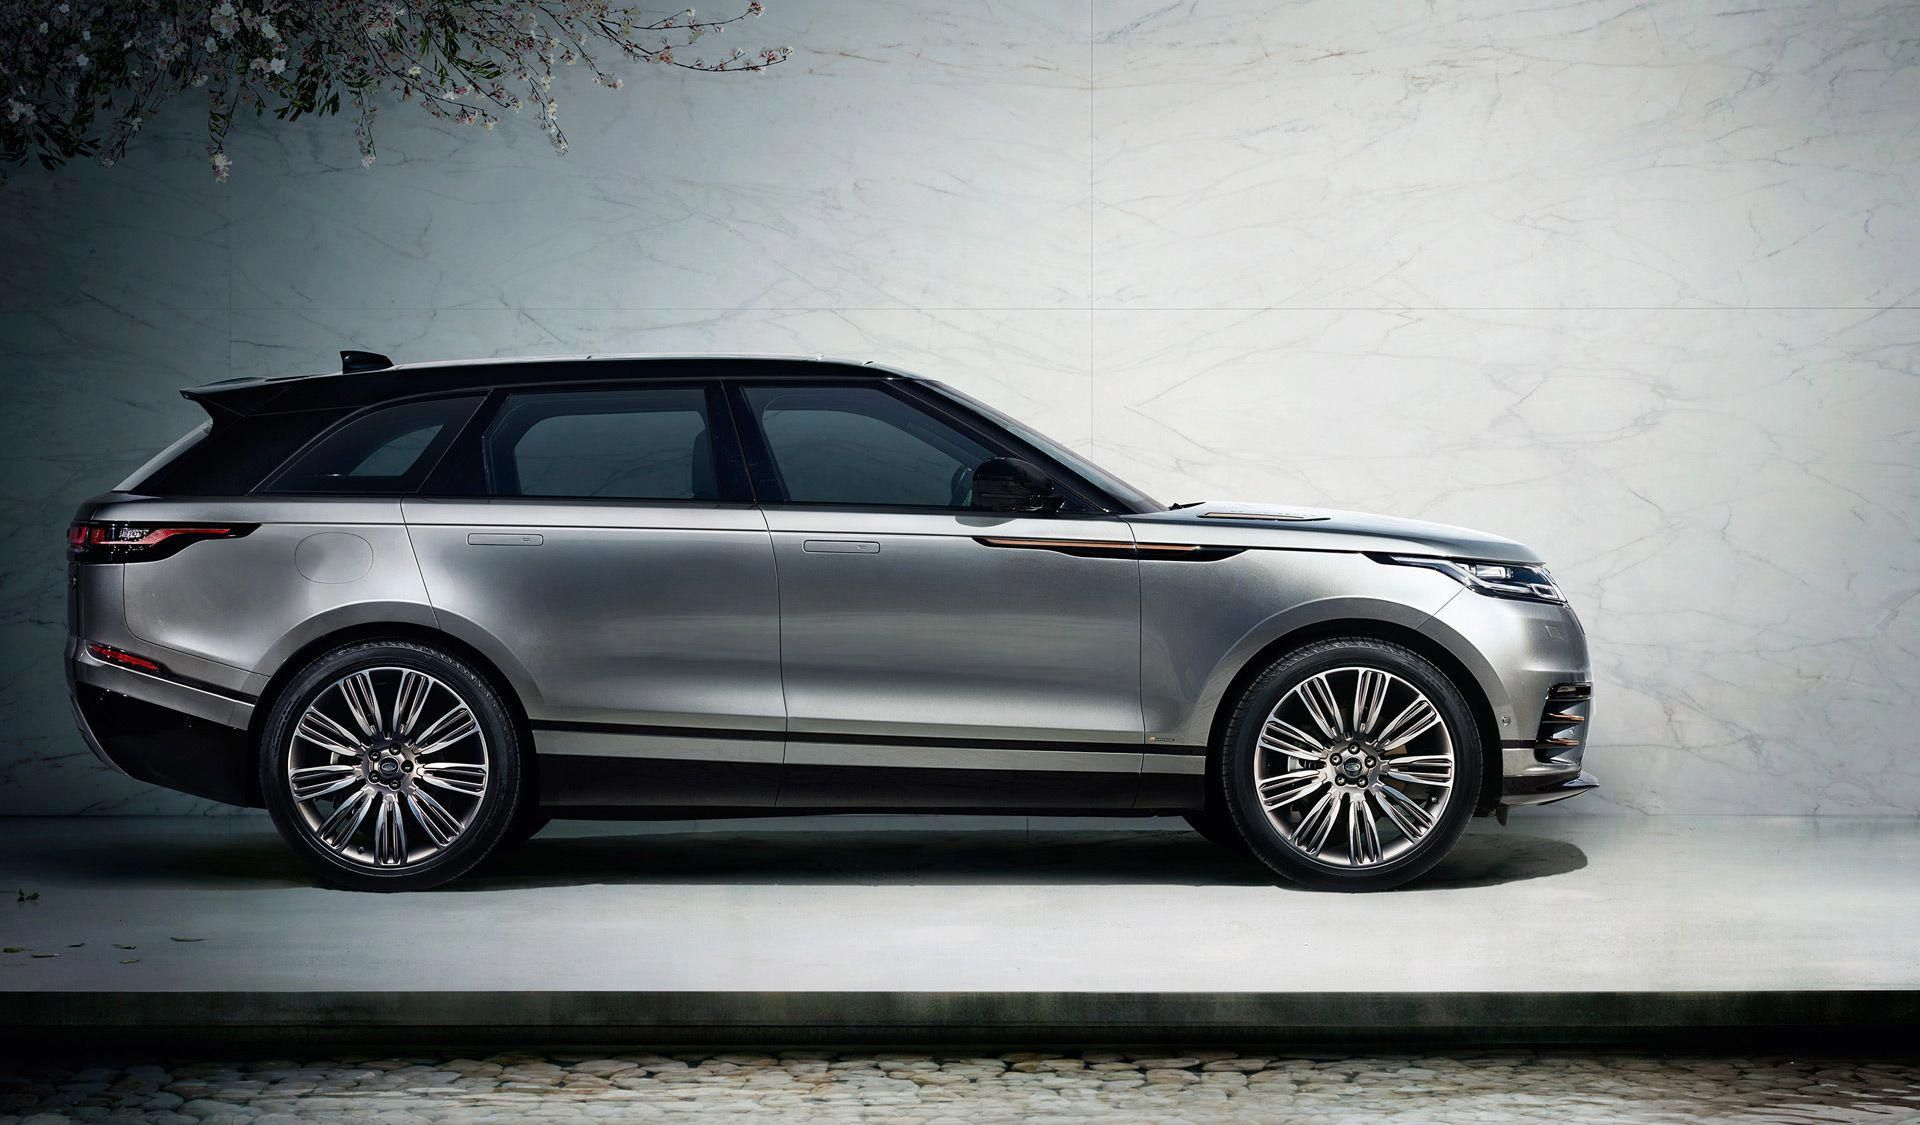 Bread And Er Automakers Aren T The Only Ones Cashing In On Market S Suv Craze Even Luxury Brands With No History Of Sport Utility Vehicles Have